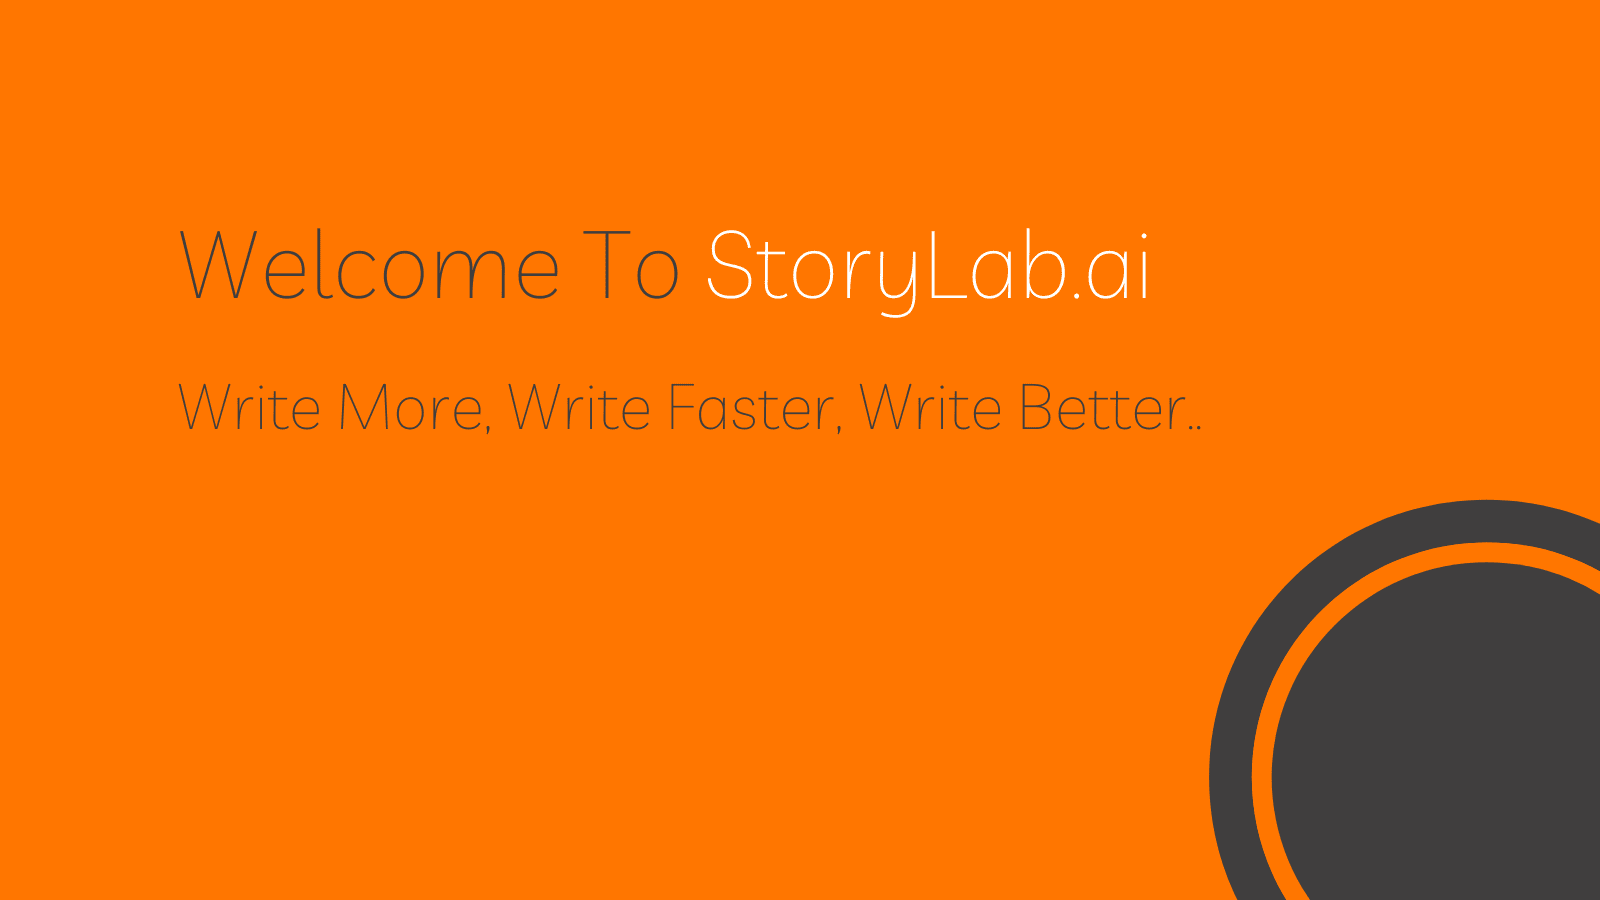 Welcome To StoryLab.ai